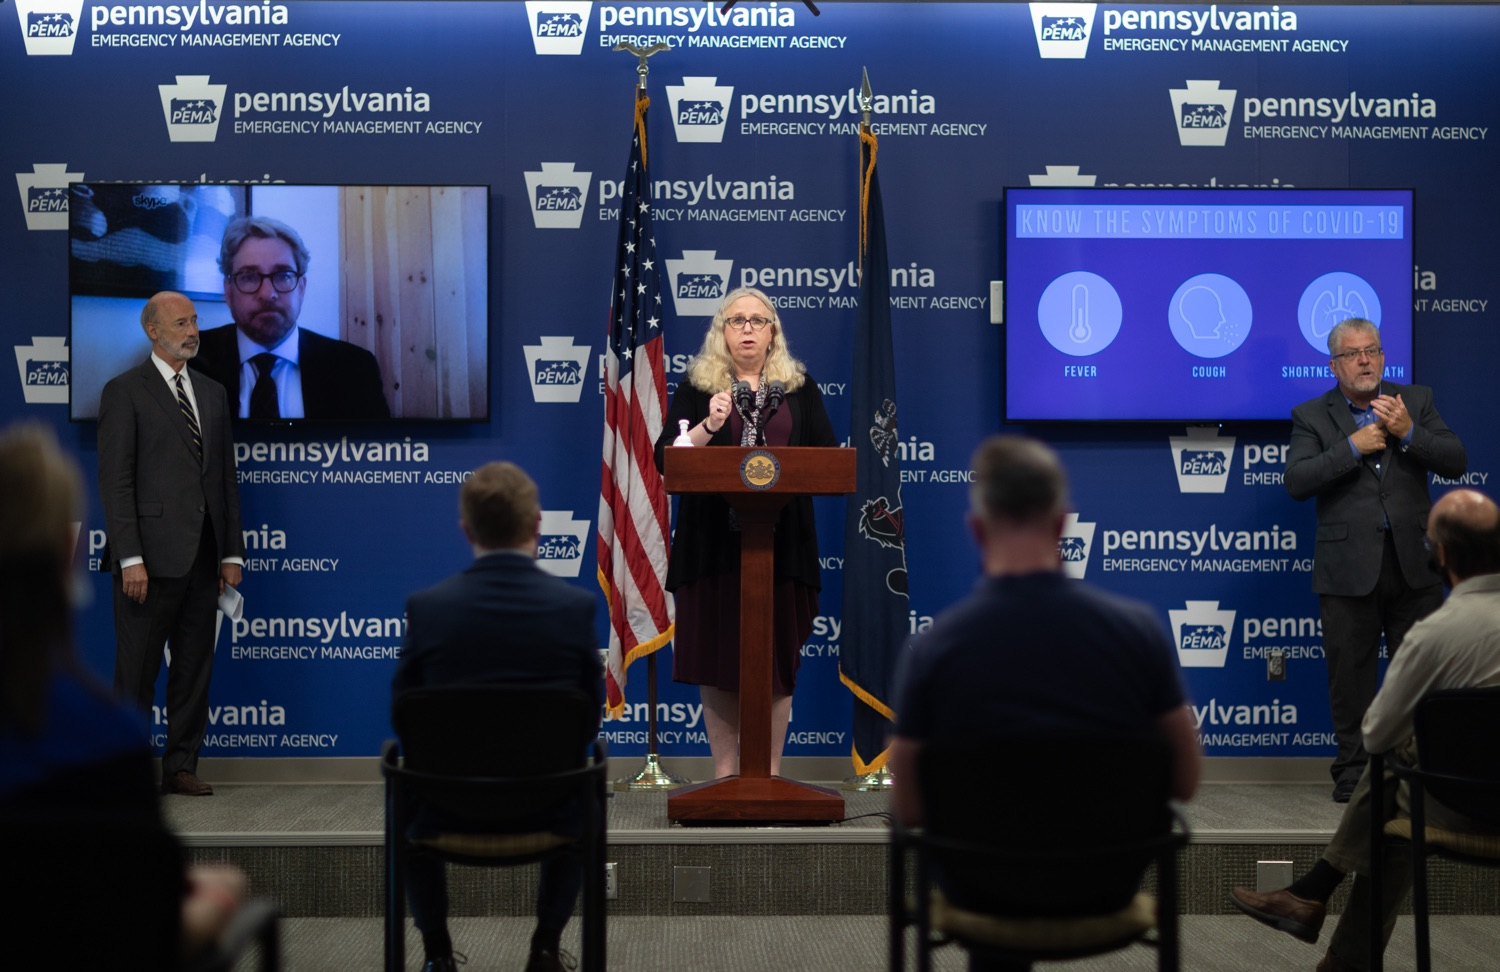 """<a href=""""https://filesource.wostreaming.net/commonwealthofpa/photo/18165_GOV_covid_mitigation_dz_07.jpg"""" target=""""_blank"""">⇣Download Photo<br></a>Pennsylvania Secretary of Health Dr. Rachel Levine speaking with the press.  Governor Tom Wolf and Sec. of Health Dr. Rachel Levine today signed new orders for targeted mitigation efforts in response to the recent rise in COVID cases, primarily in southwest Pennsylvania, but also in other counties in the state, influencing the decision for statewide mitigation efforts for bars and restaurants, gatherings and telework. The new orders take effect at 12:01 a.m., Thursday, July 16, 2020.  Harrisburg, - July 15, 2020"""